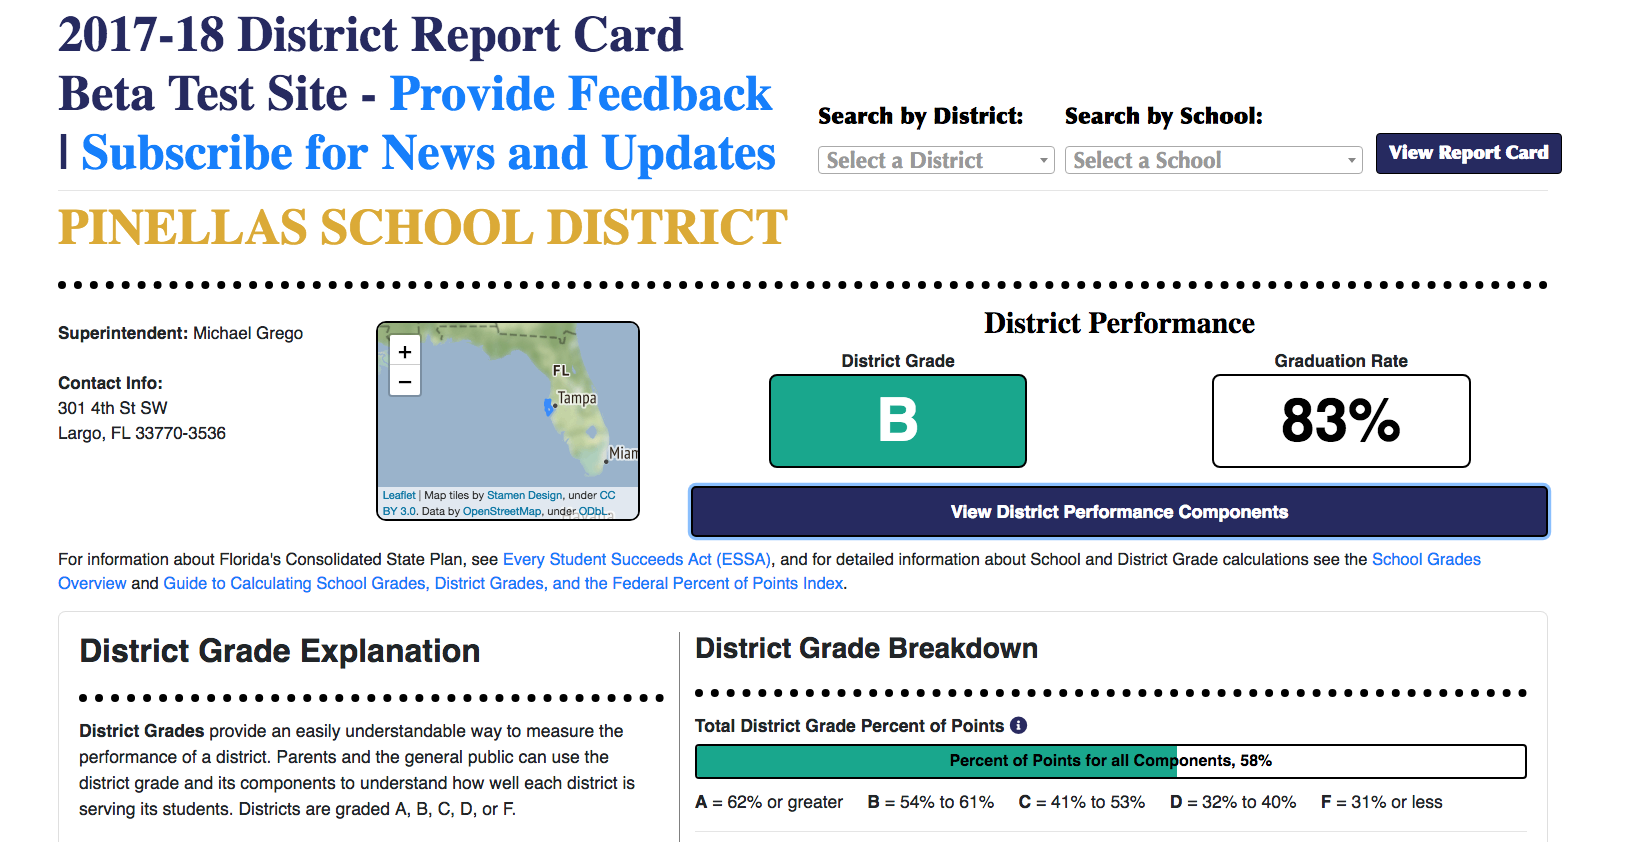 Education Department Launches New >> Florida Education Department Launches New School District